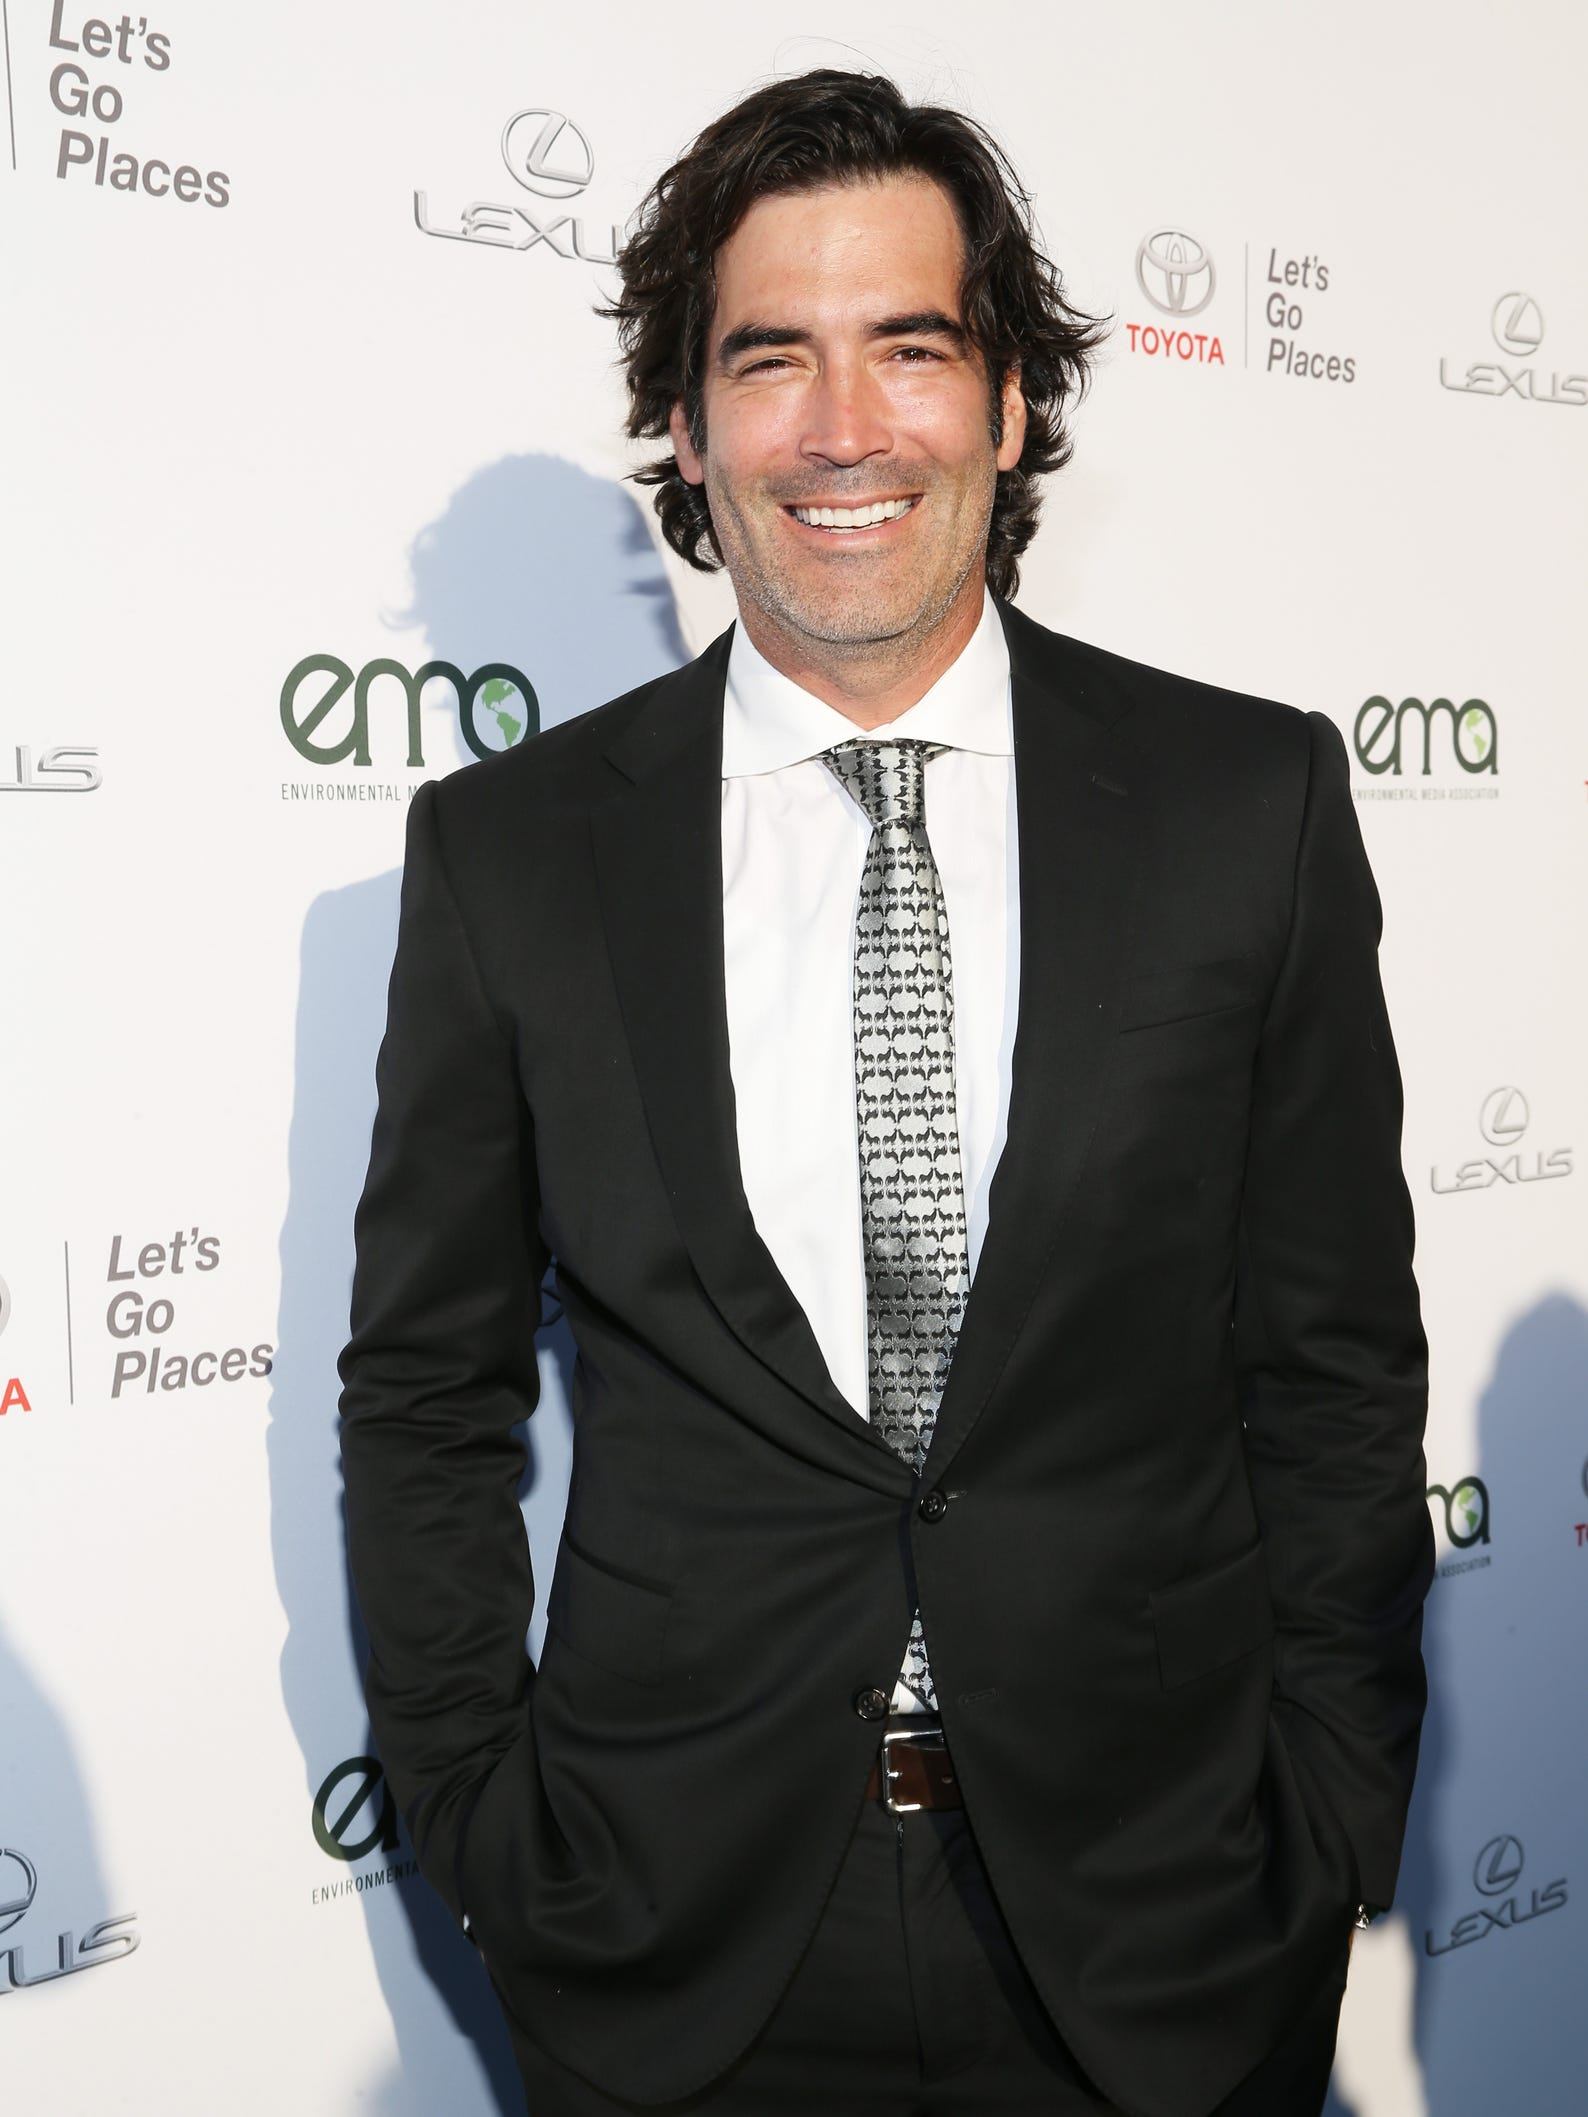 HGTV personality Carter Oosterhouse says his relationship